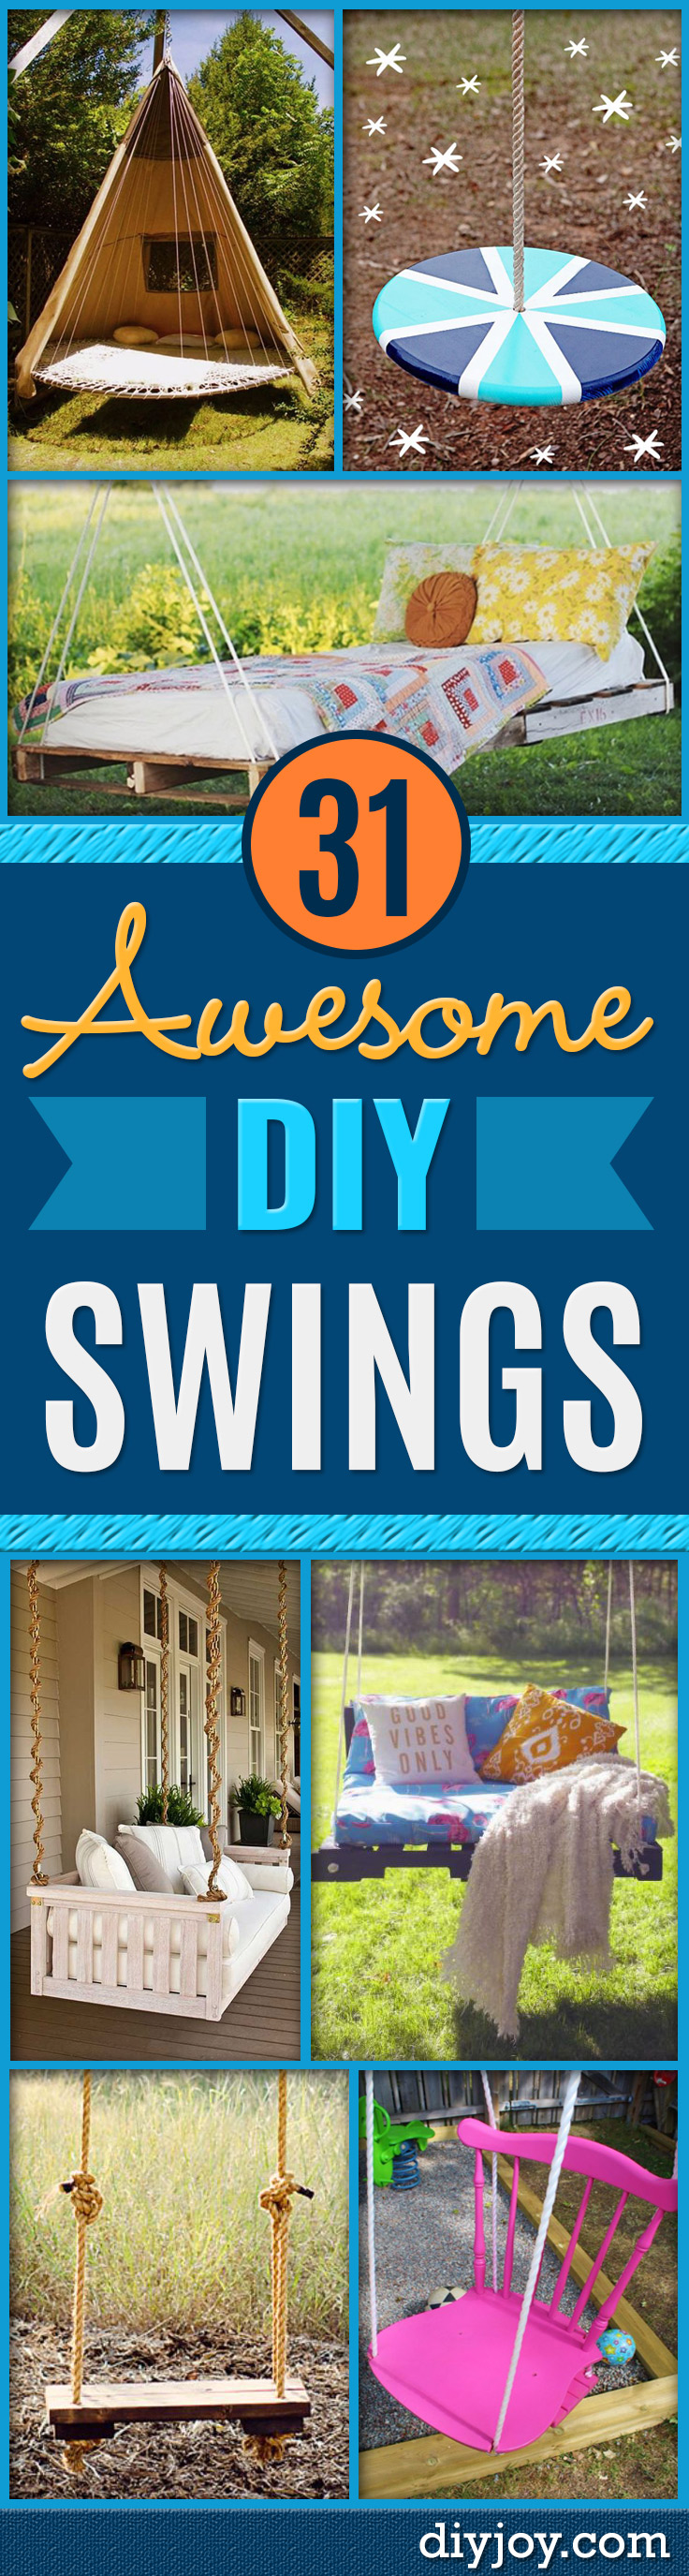 DIY Swings - Best Do It Yourself Outdoor Swing Projects and Tutorials for Tire, Rocking, Hanging, Double Seat, Porch, Patio and Yard. Easy Ideas for Kids and Adults - Make The Best Backyard Ever This Summer With These Awesome Seating and Play Ideas for Swings - Creative Home Decor and Crafts by DIY JOY